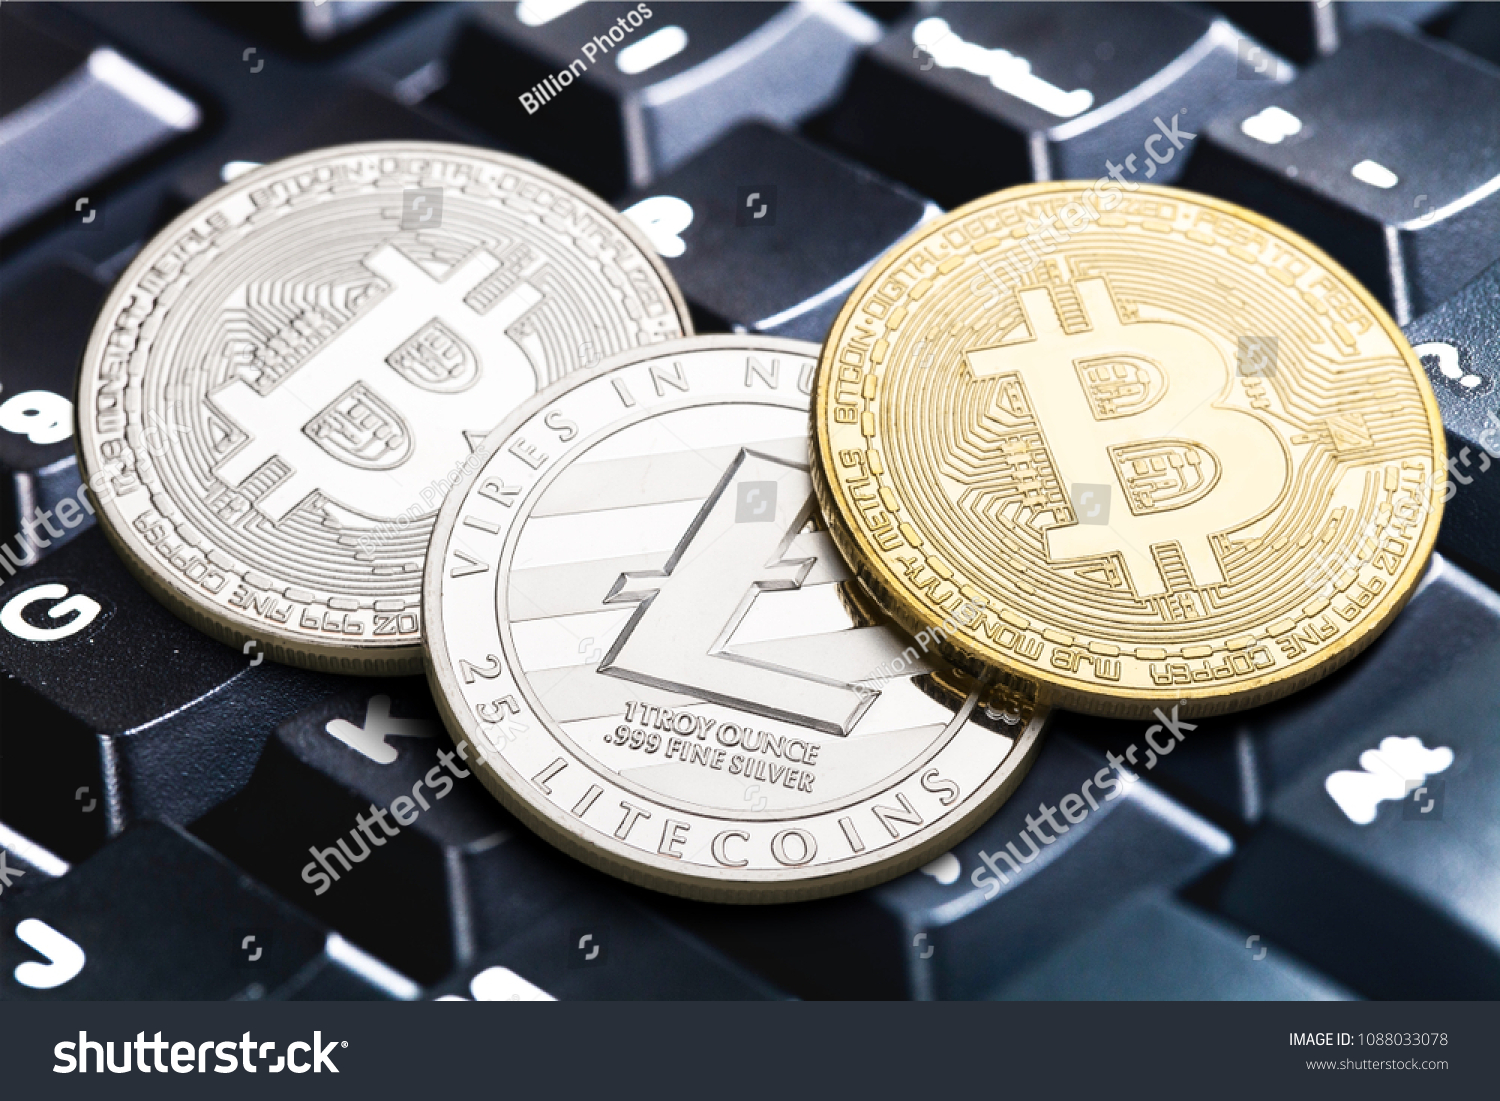 Cryptocurrency Coins Litecoin Bitcoin Stock Photo (Edit Now